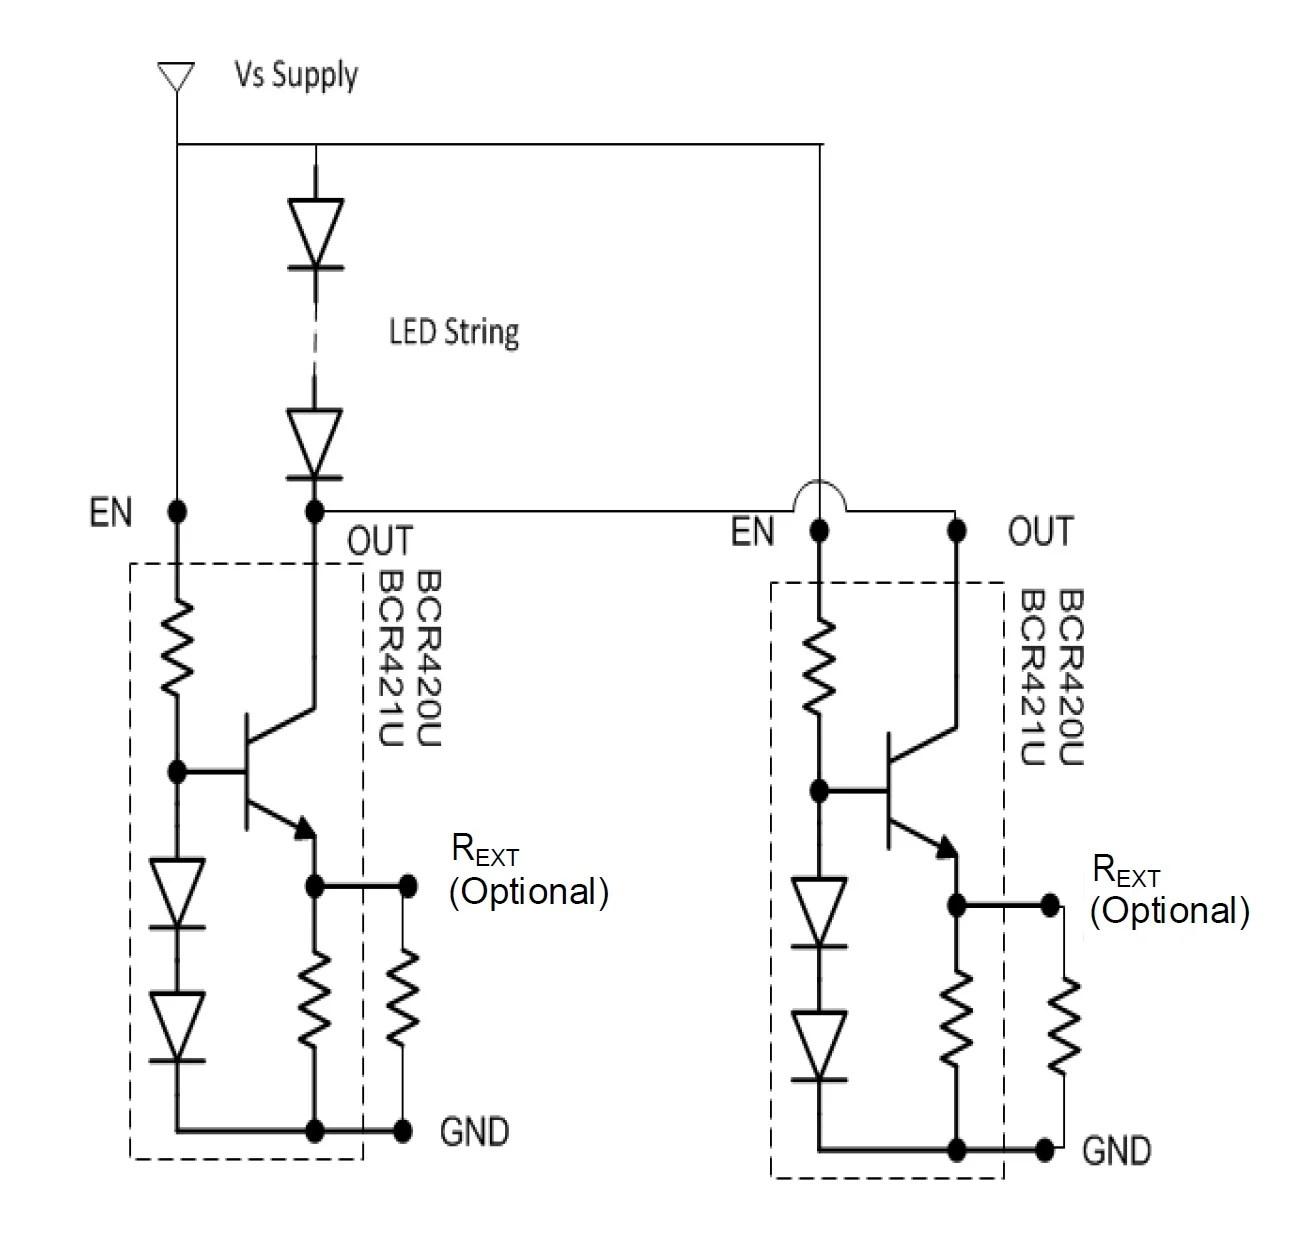 hight resolution of a parallel configuration allows for higher led currents circuit taken from the datasheet pdf